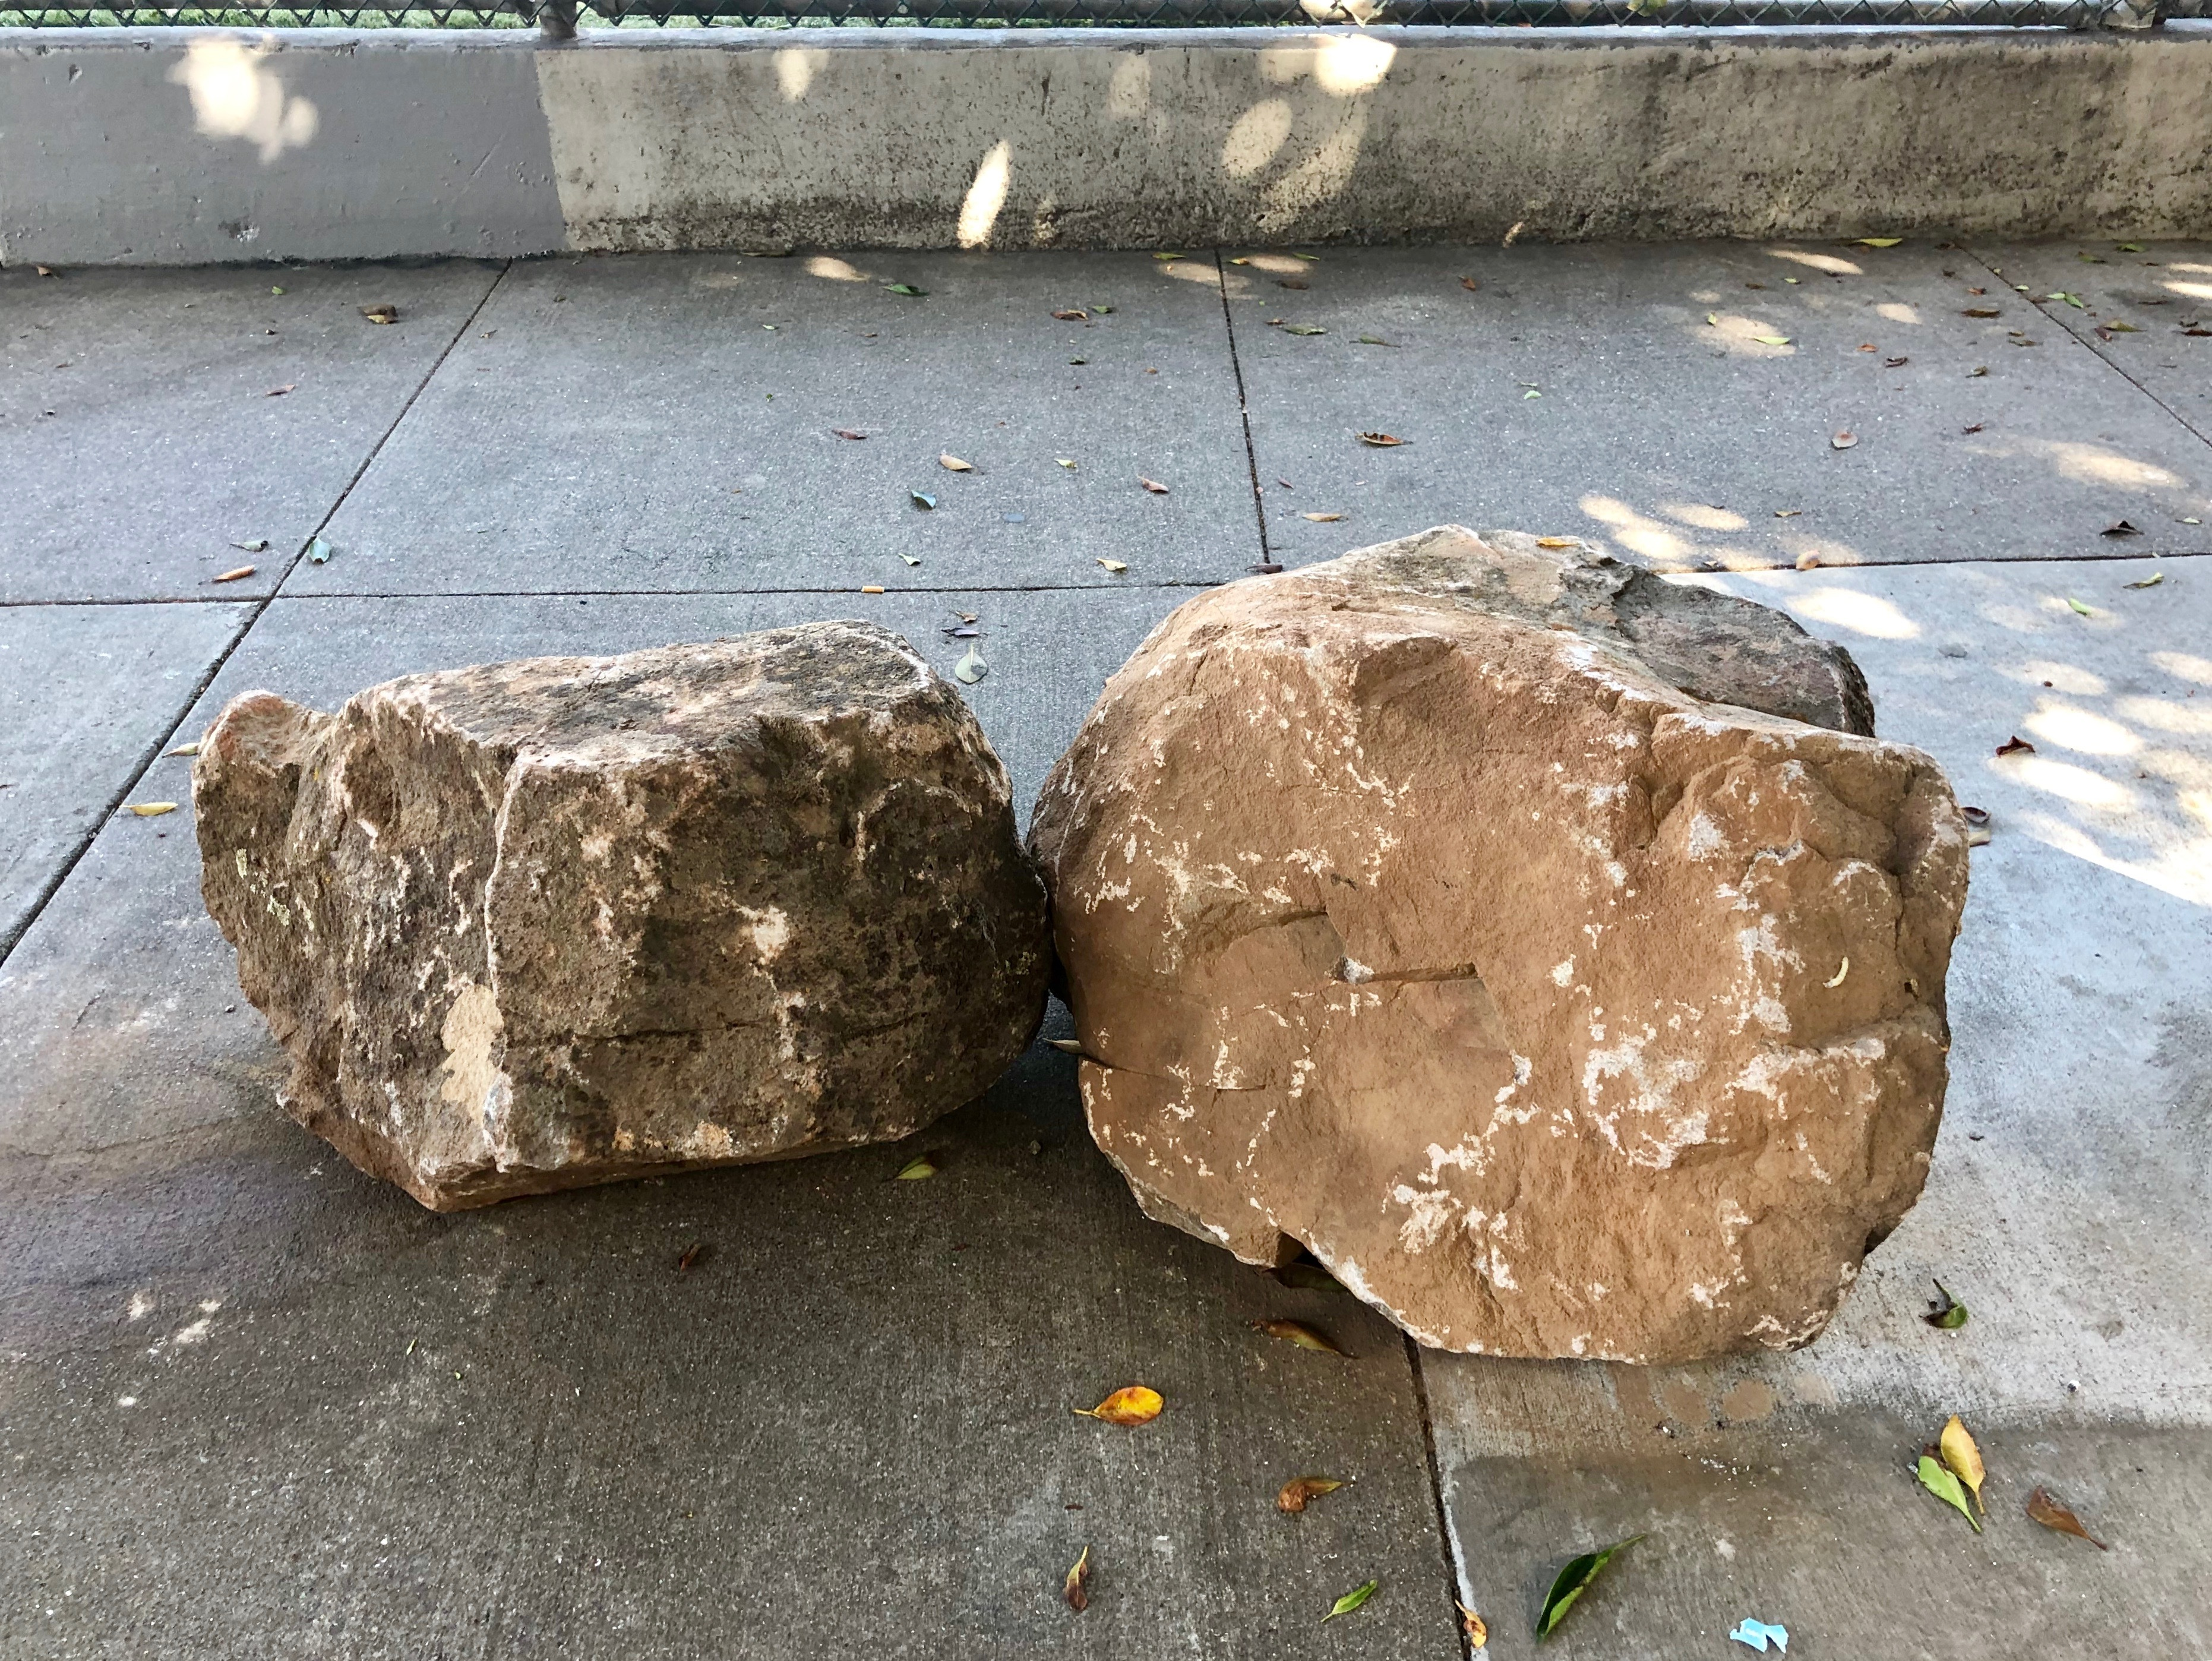 Two large brown boulders side-by-side on a sidewalk.